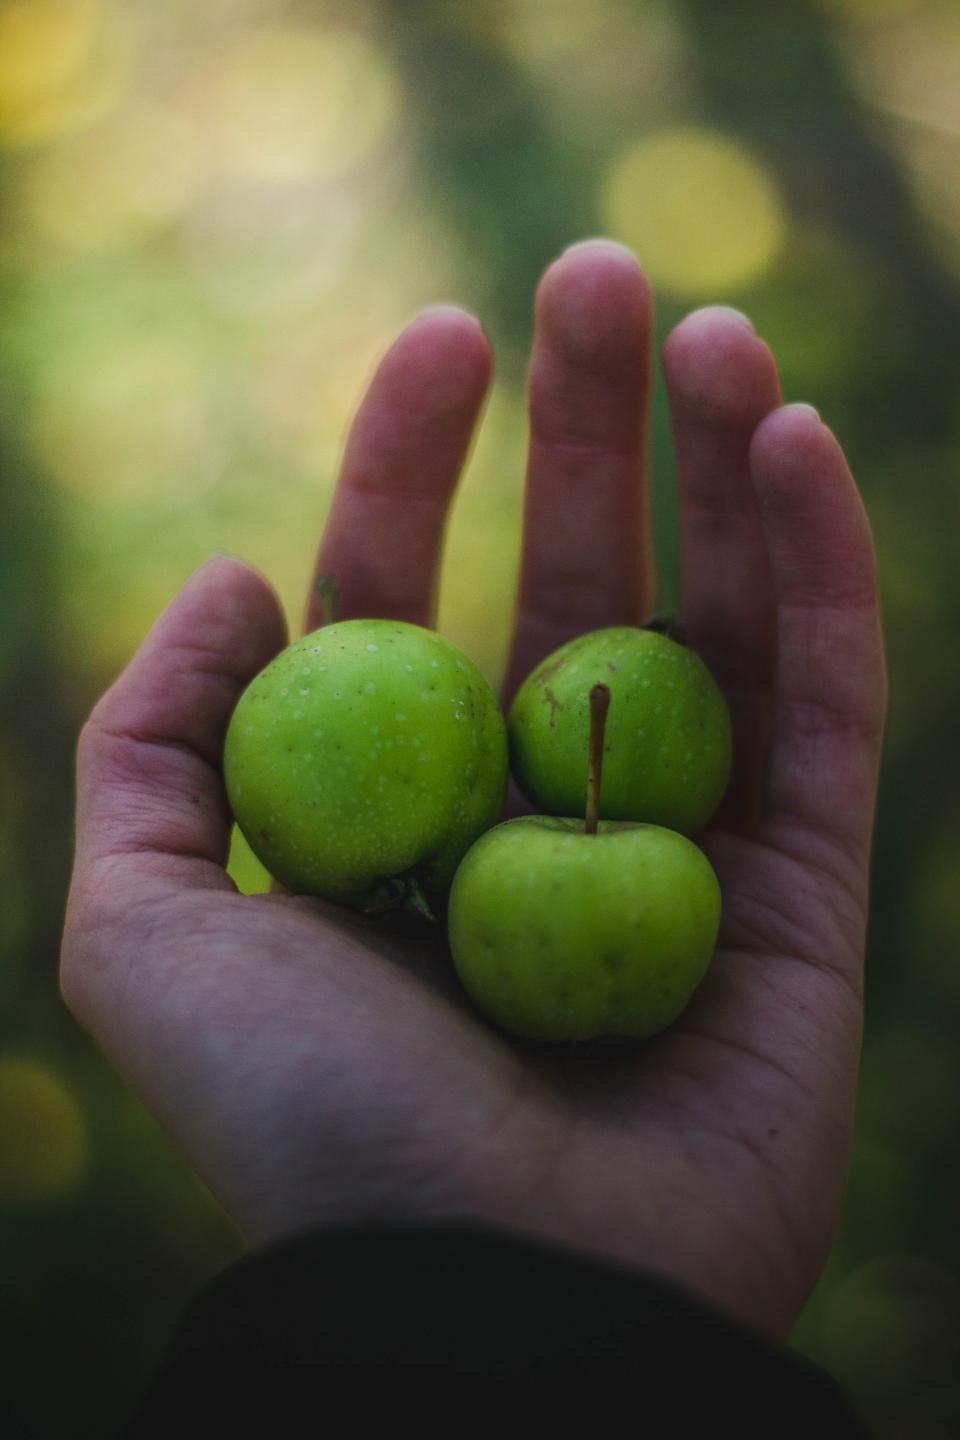 green apple fruit juicy food palm hand blur